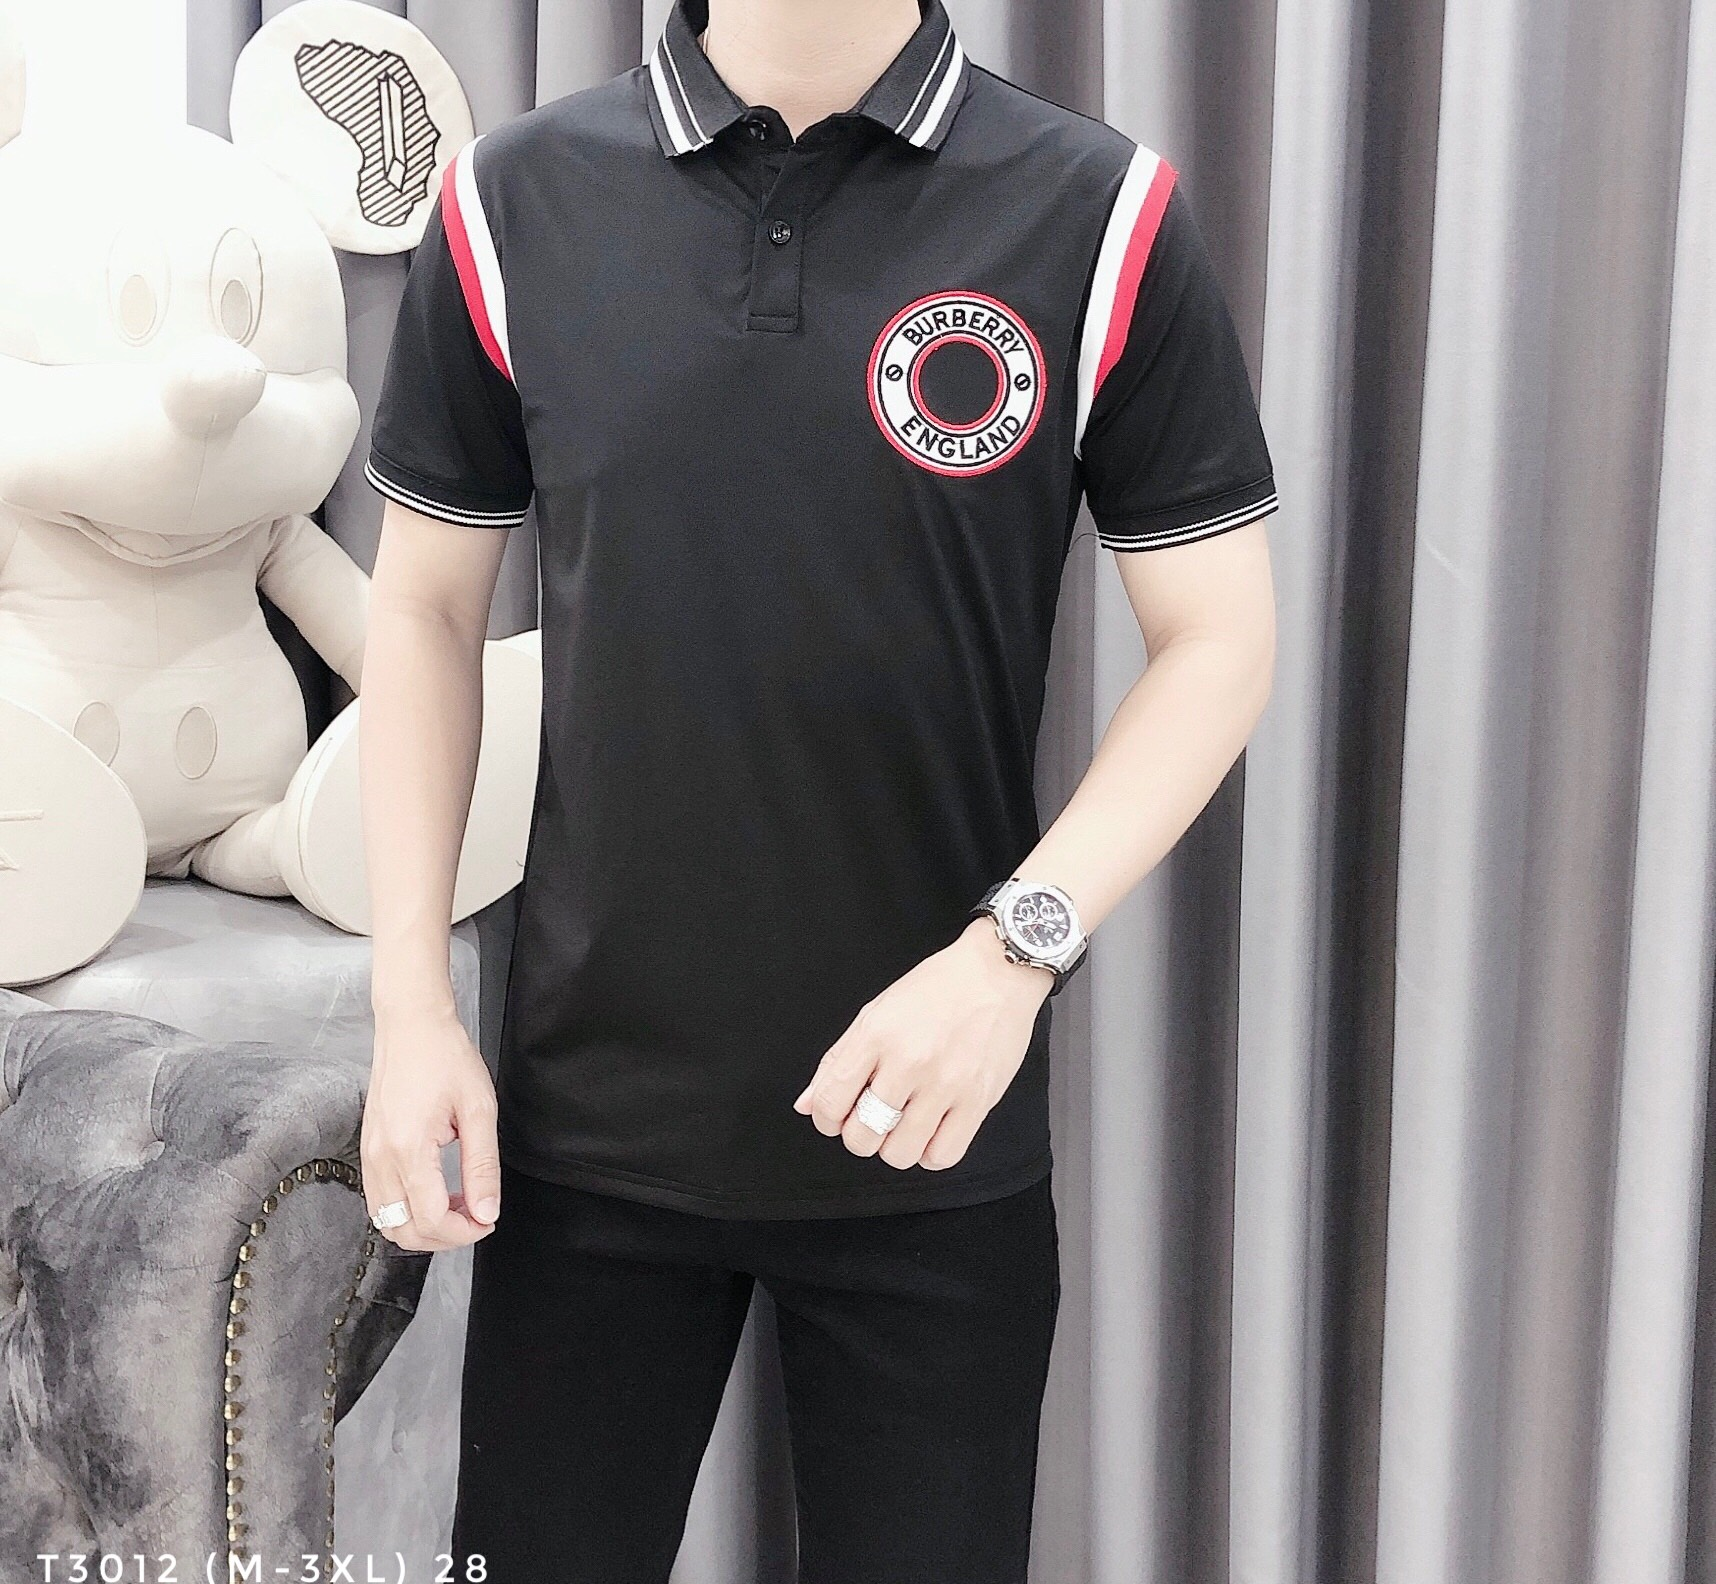 AT POLO T3012 (M - 3XL)